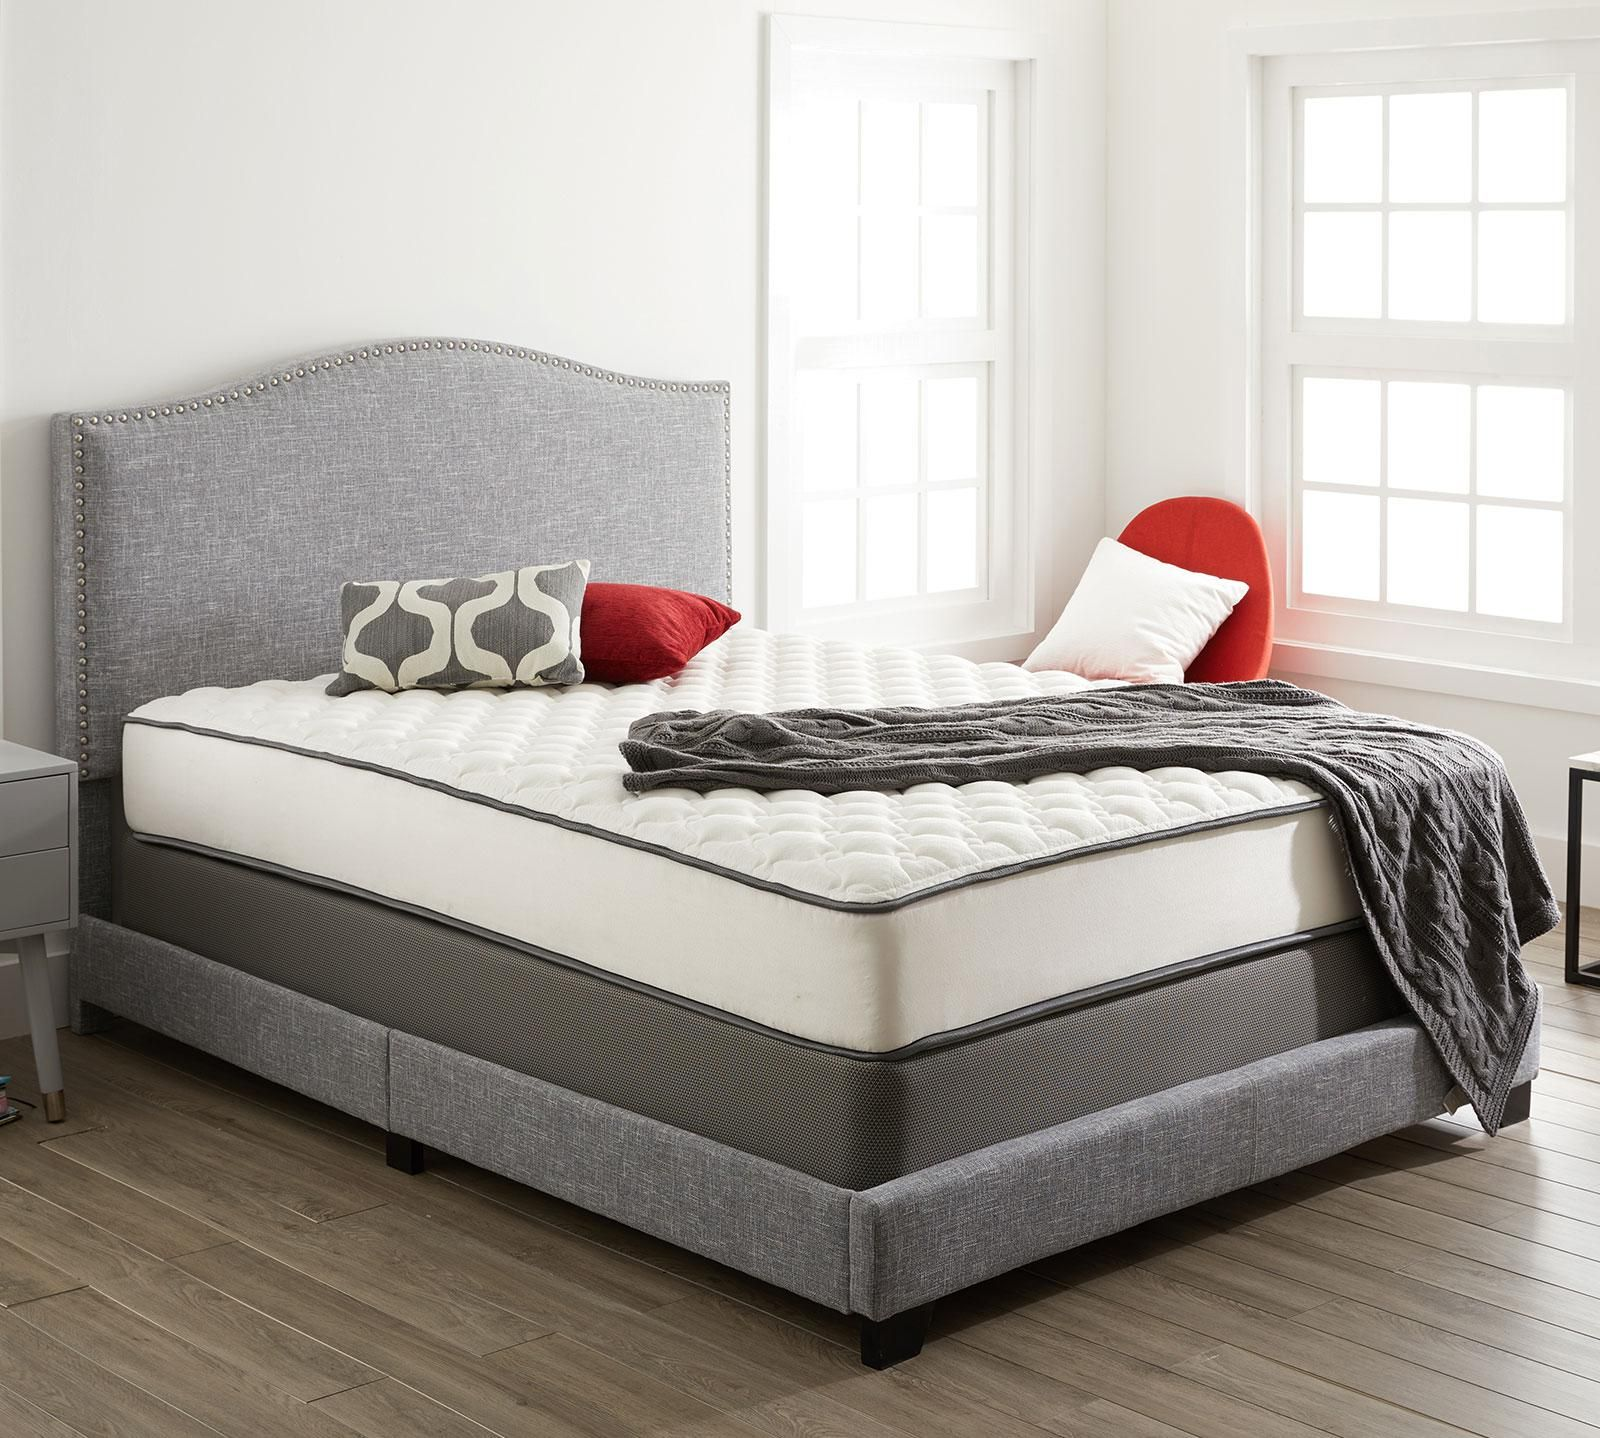 "Greenwood 9.5"" Firm Mattress in 2020 Adjustable beds"